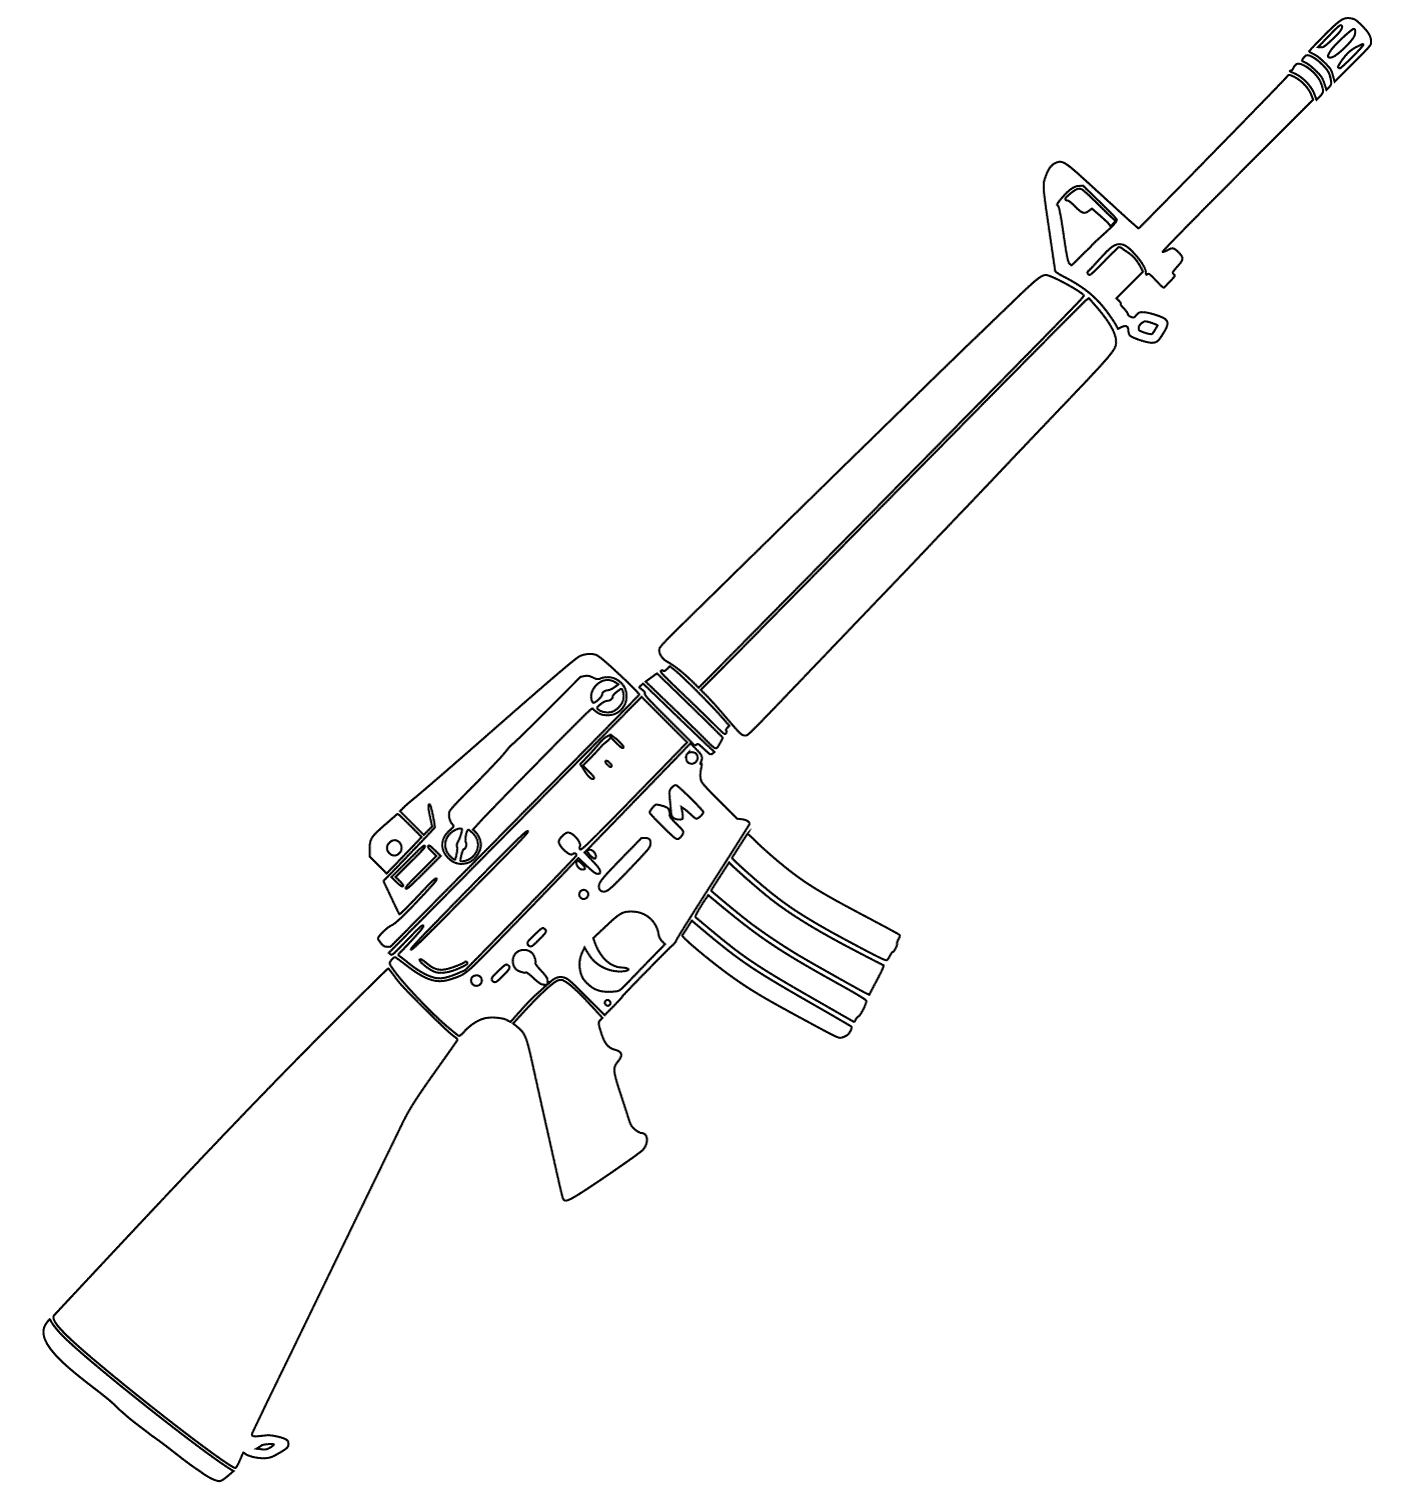 pistol coloring pages to and print for free